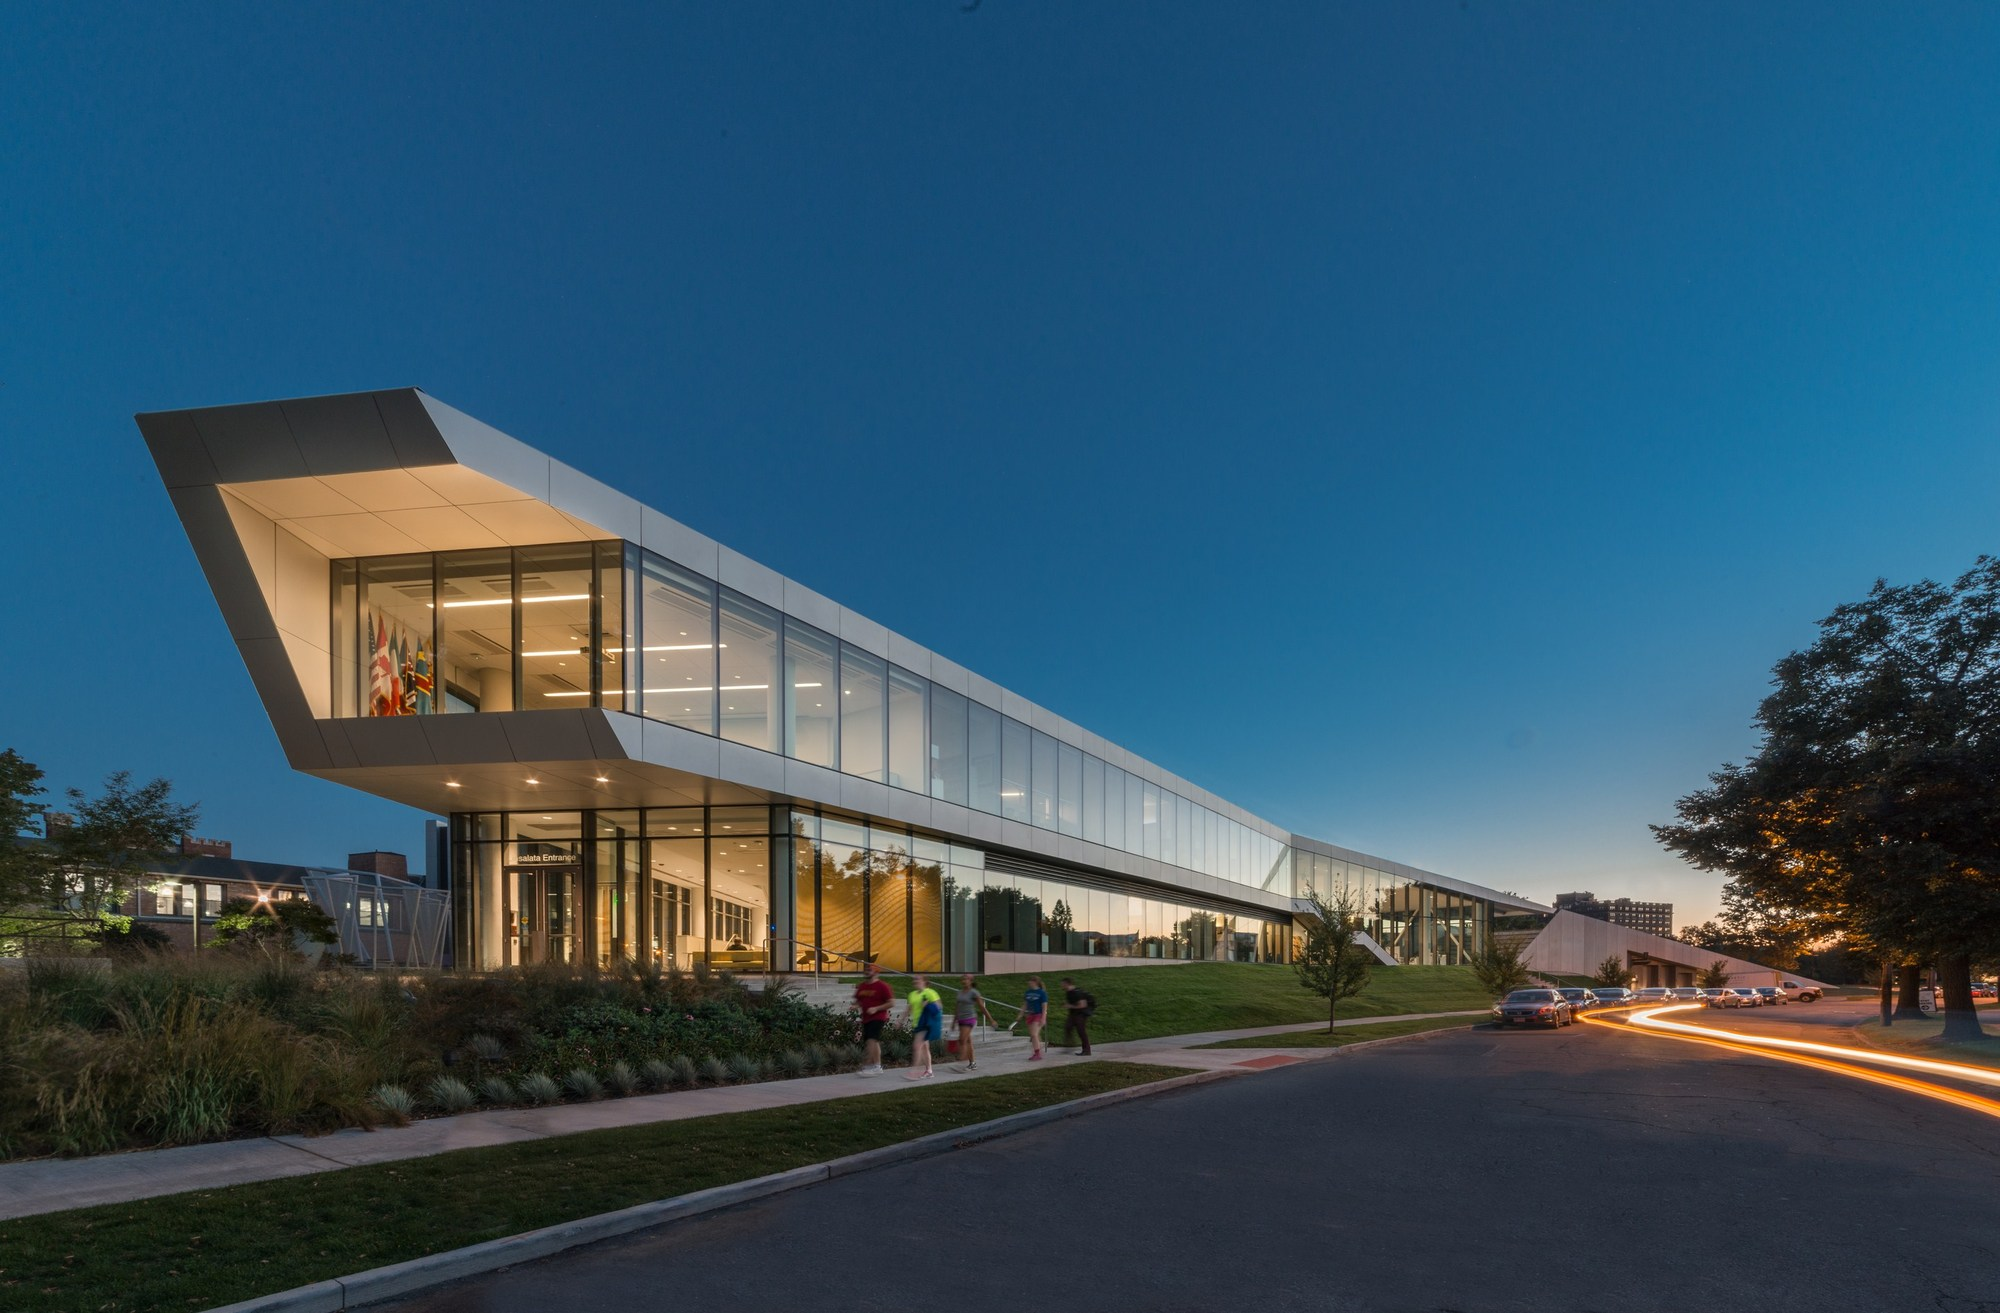 case western reserve university tinkham veale university center perkinswill